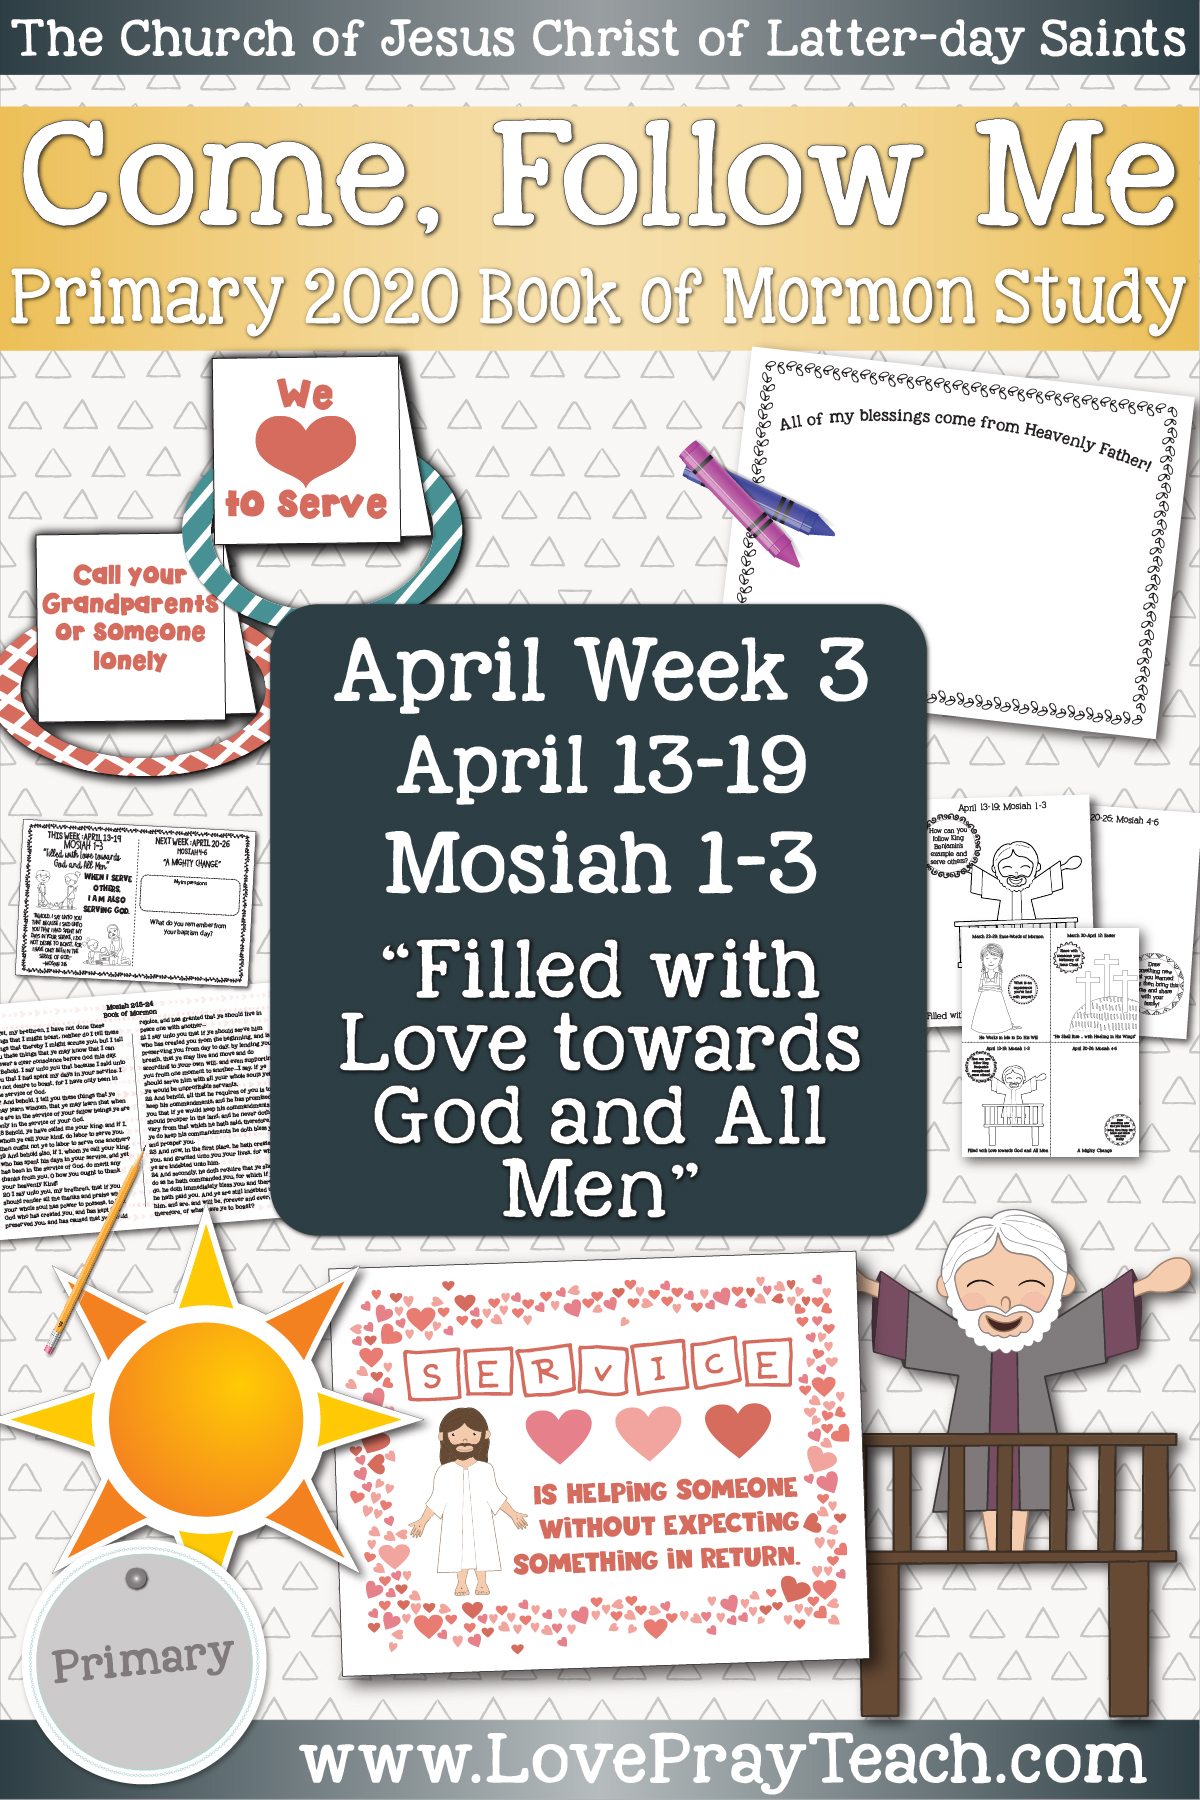 "Come, Follow Me for Primary April Week 3: April 13-19 Mosiah 1-3 ""Filled with Love towards God and All Men"" www.LovePrayTeach.com"